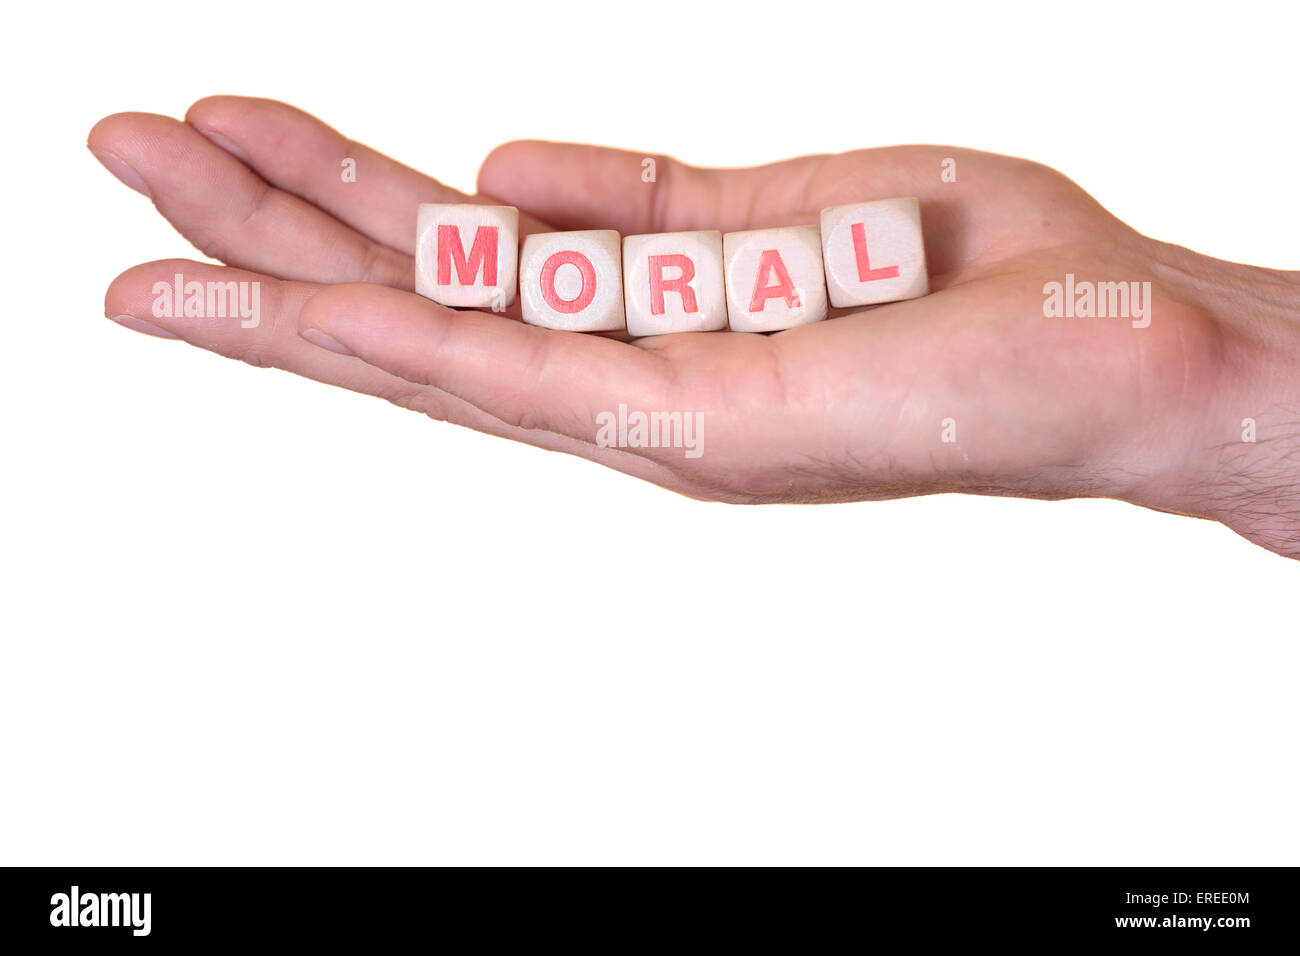 The word moral written with wooden dice on the he palm of the hand. Isolated on white background - Stock Image